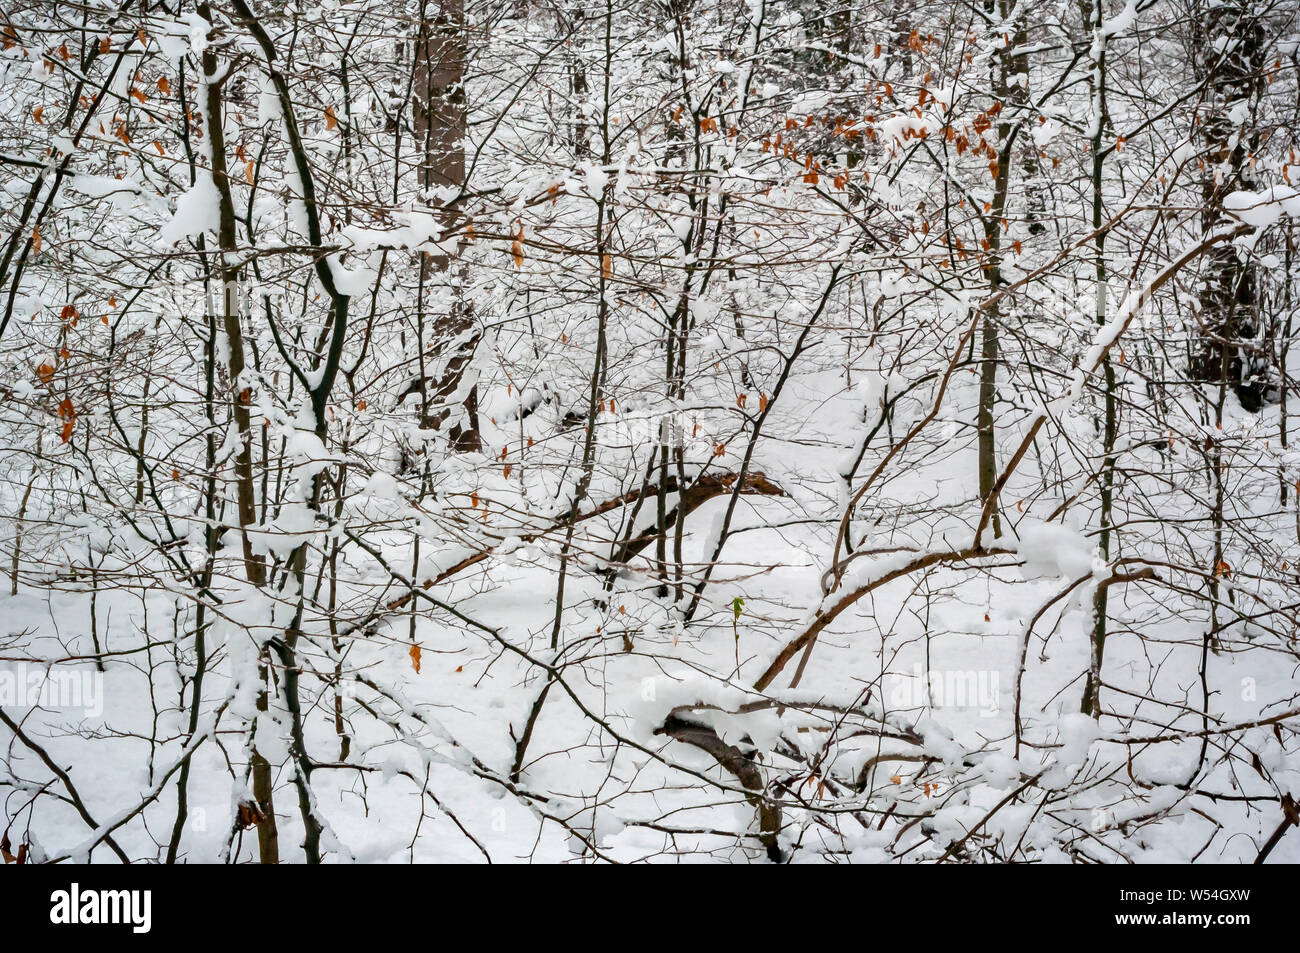 Winter Scene in Cobnar Wood within Graves Park, Sheffield, with a semi-abstract shot of branches and leaves against a snow background. Stock Photo